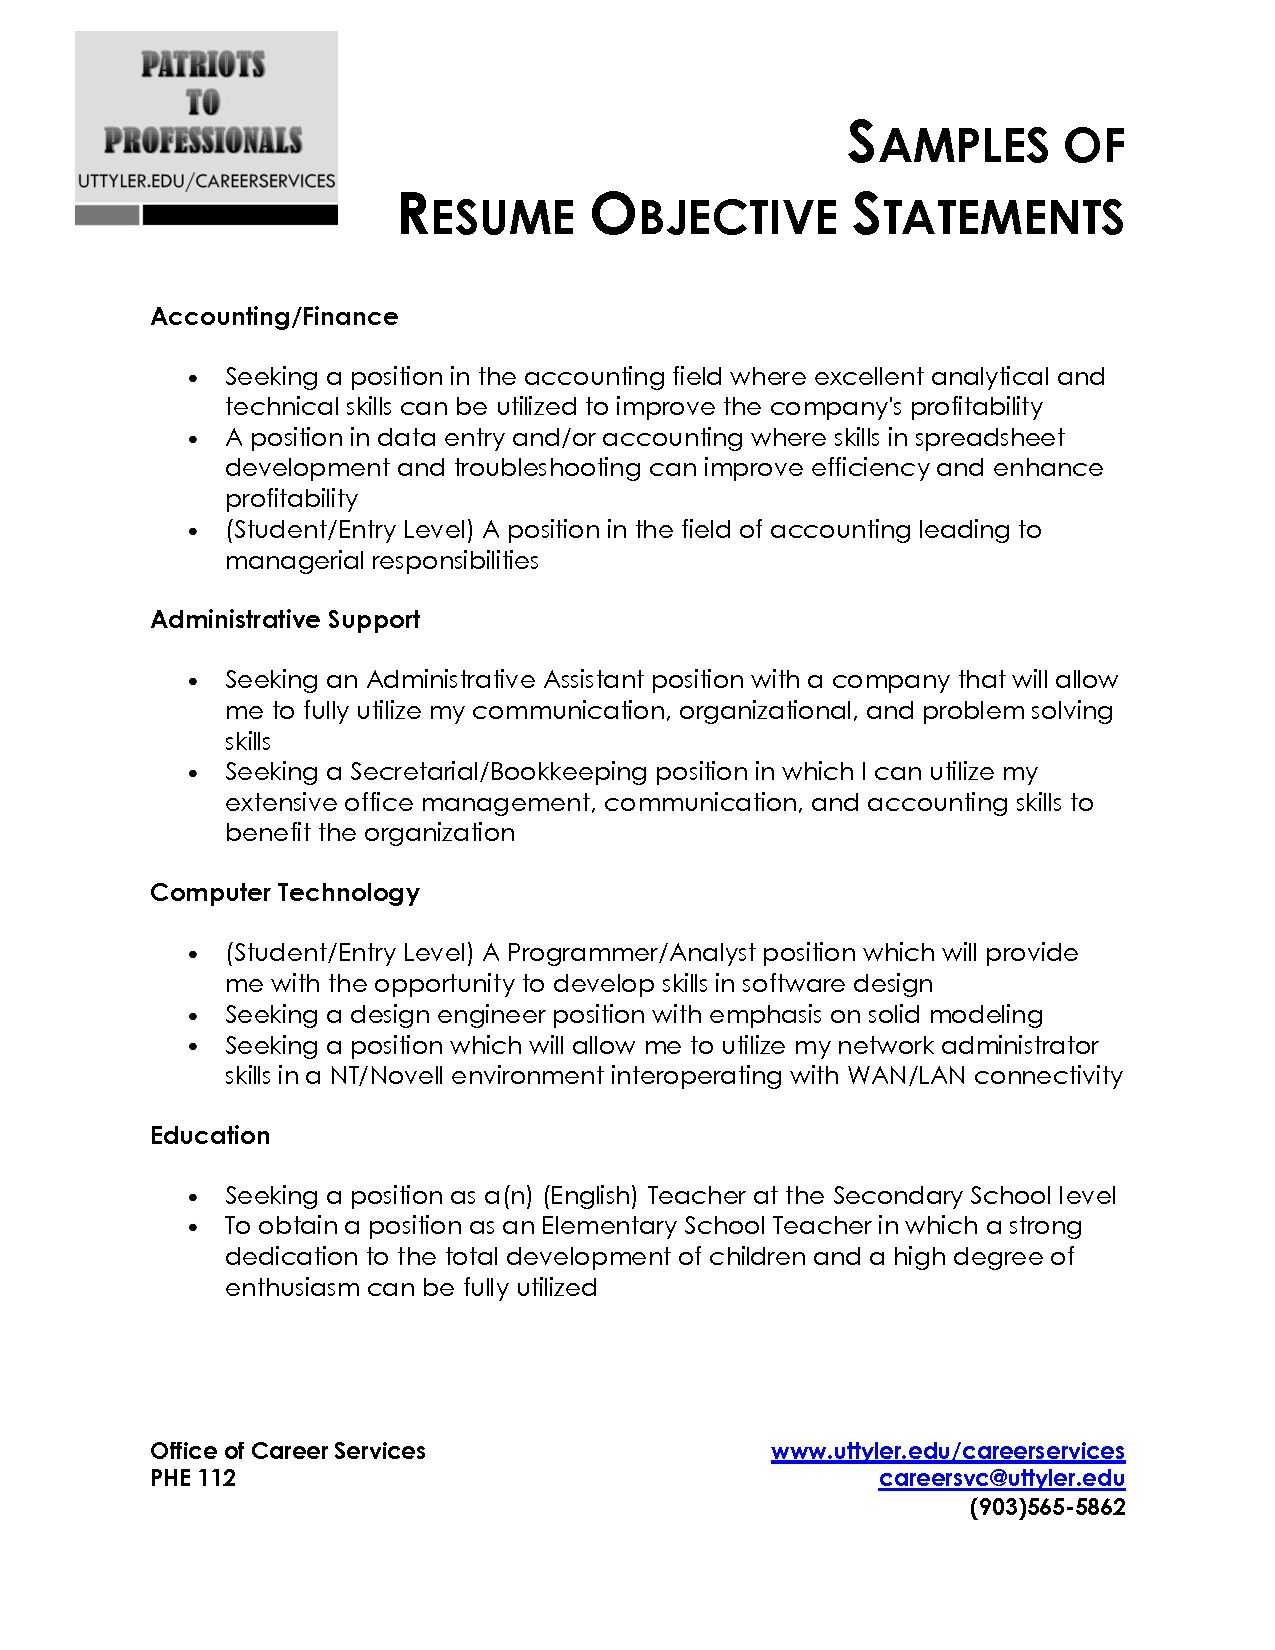 apply job application objective statement examples sample for resume any position lead Resume Sample Objective For Resume For Any Position